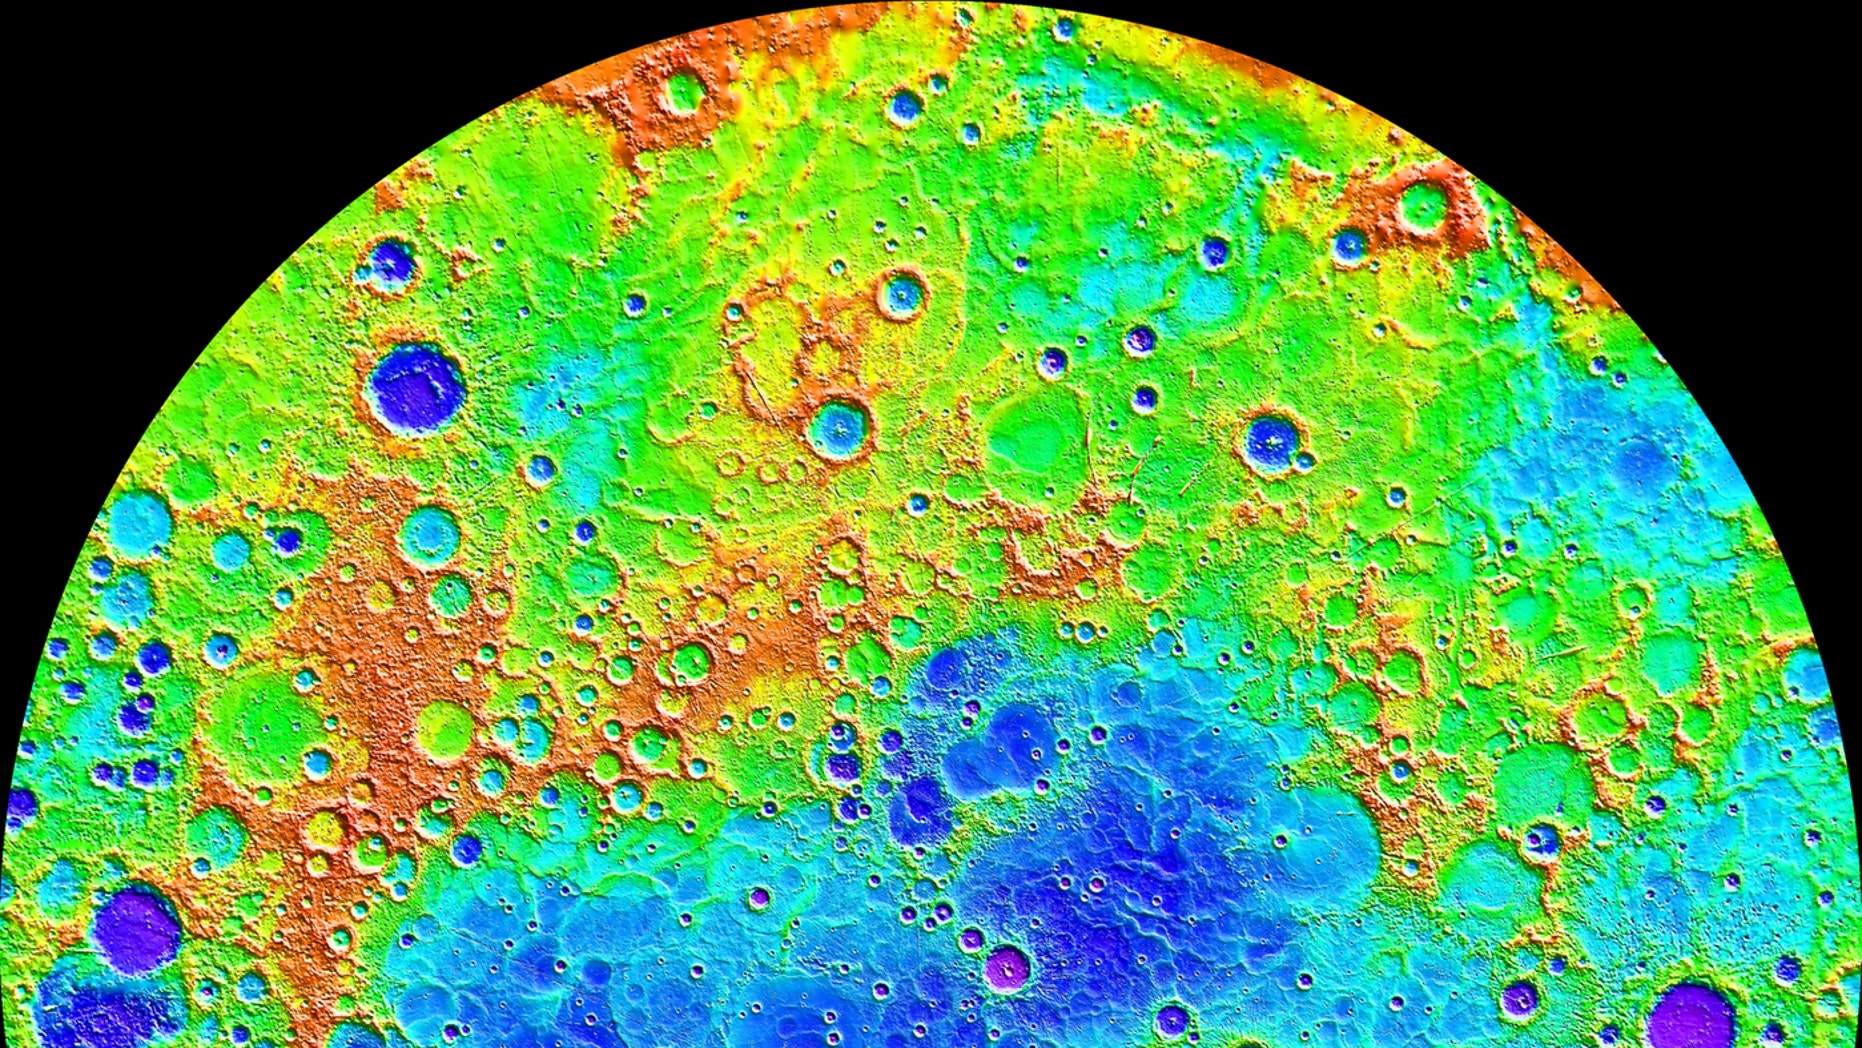 This image captured by NASA's MESSENGER spacecraft shows the varied landscapes that can be found on Mercury. Some areas appear older and heavily cratered, while other areas have younger-looking terrain. (Credit: NASA/Johns Hopkins University Applied Physics Laboratory/Carnegie Institution of Washington)